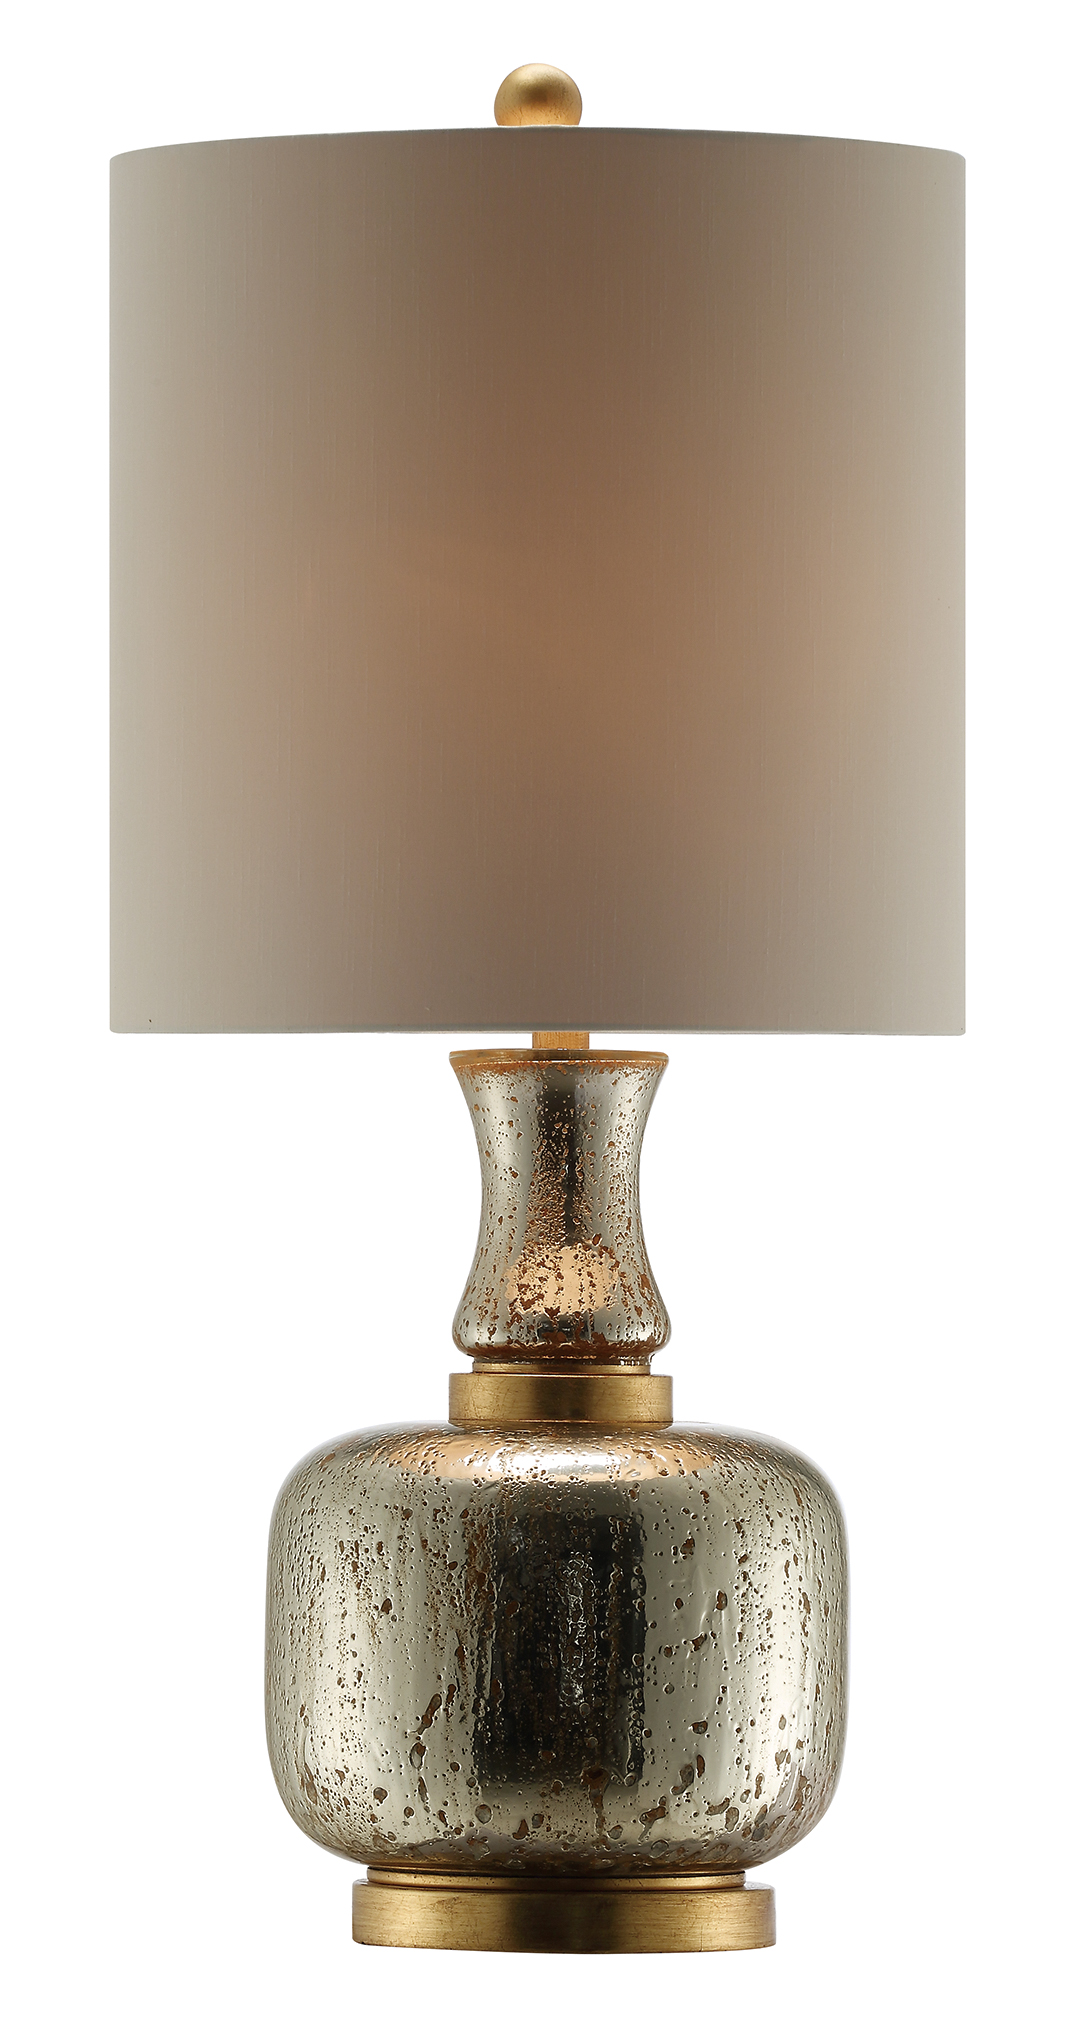 NEW Pair of Gold Silver Mercury Lamps